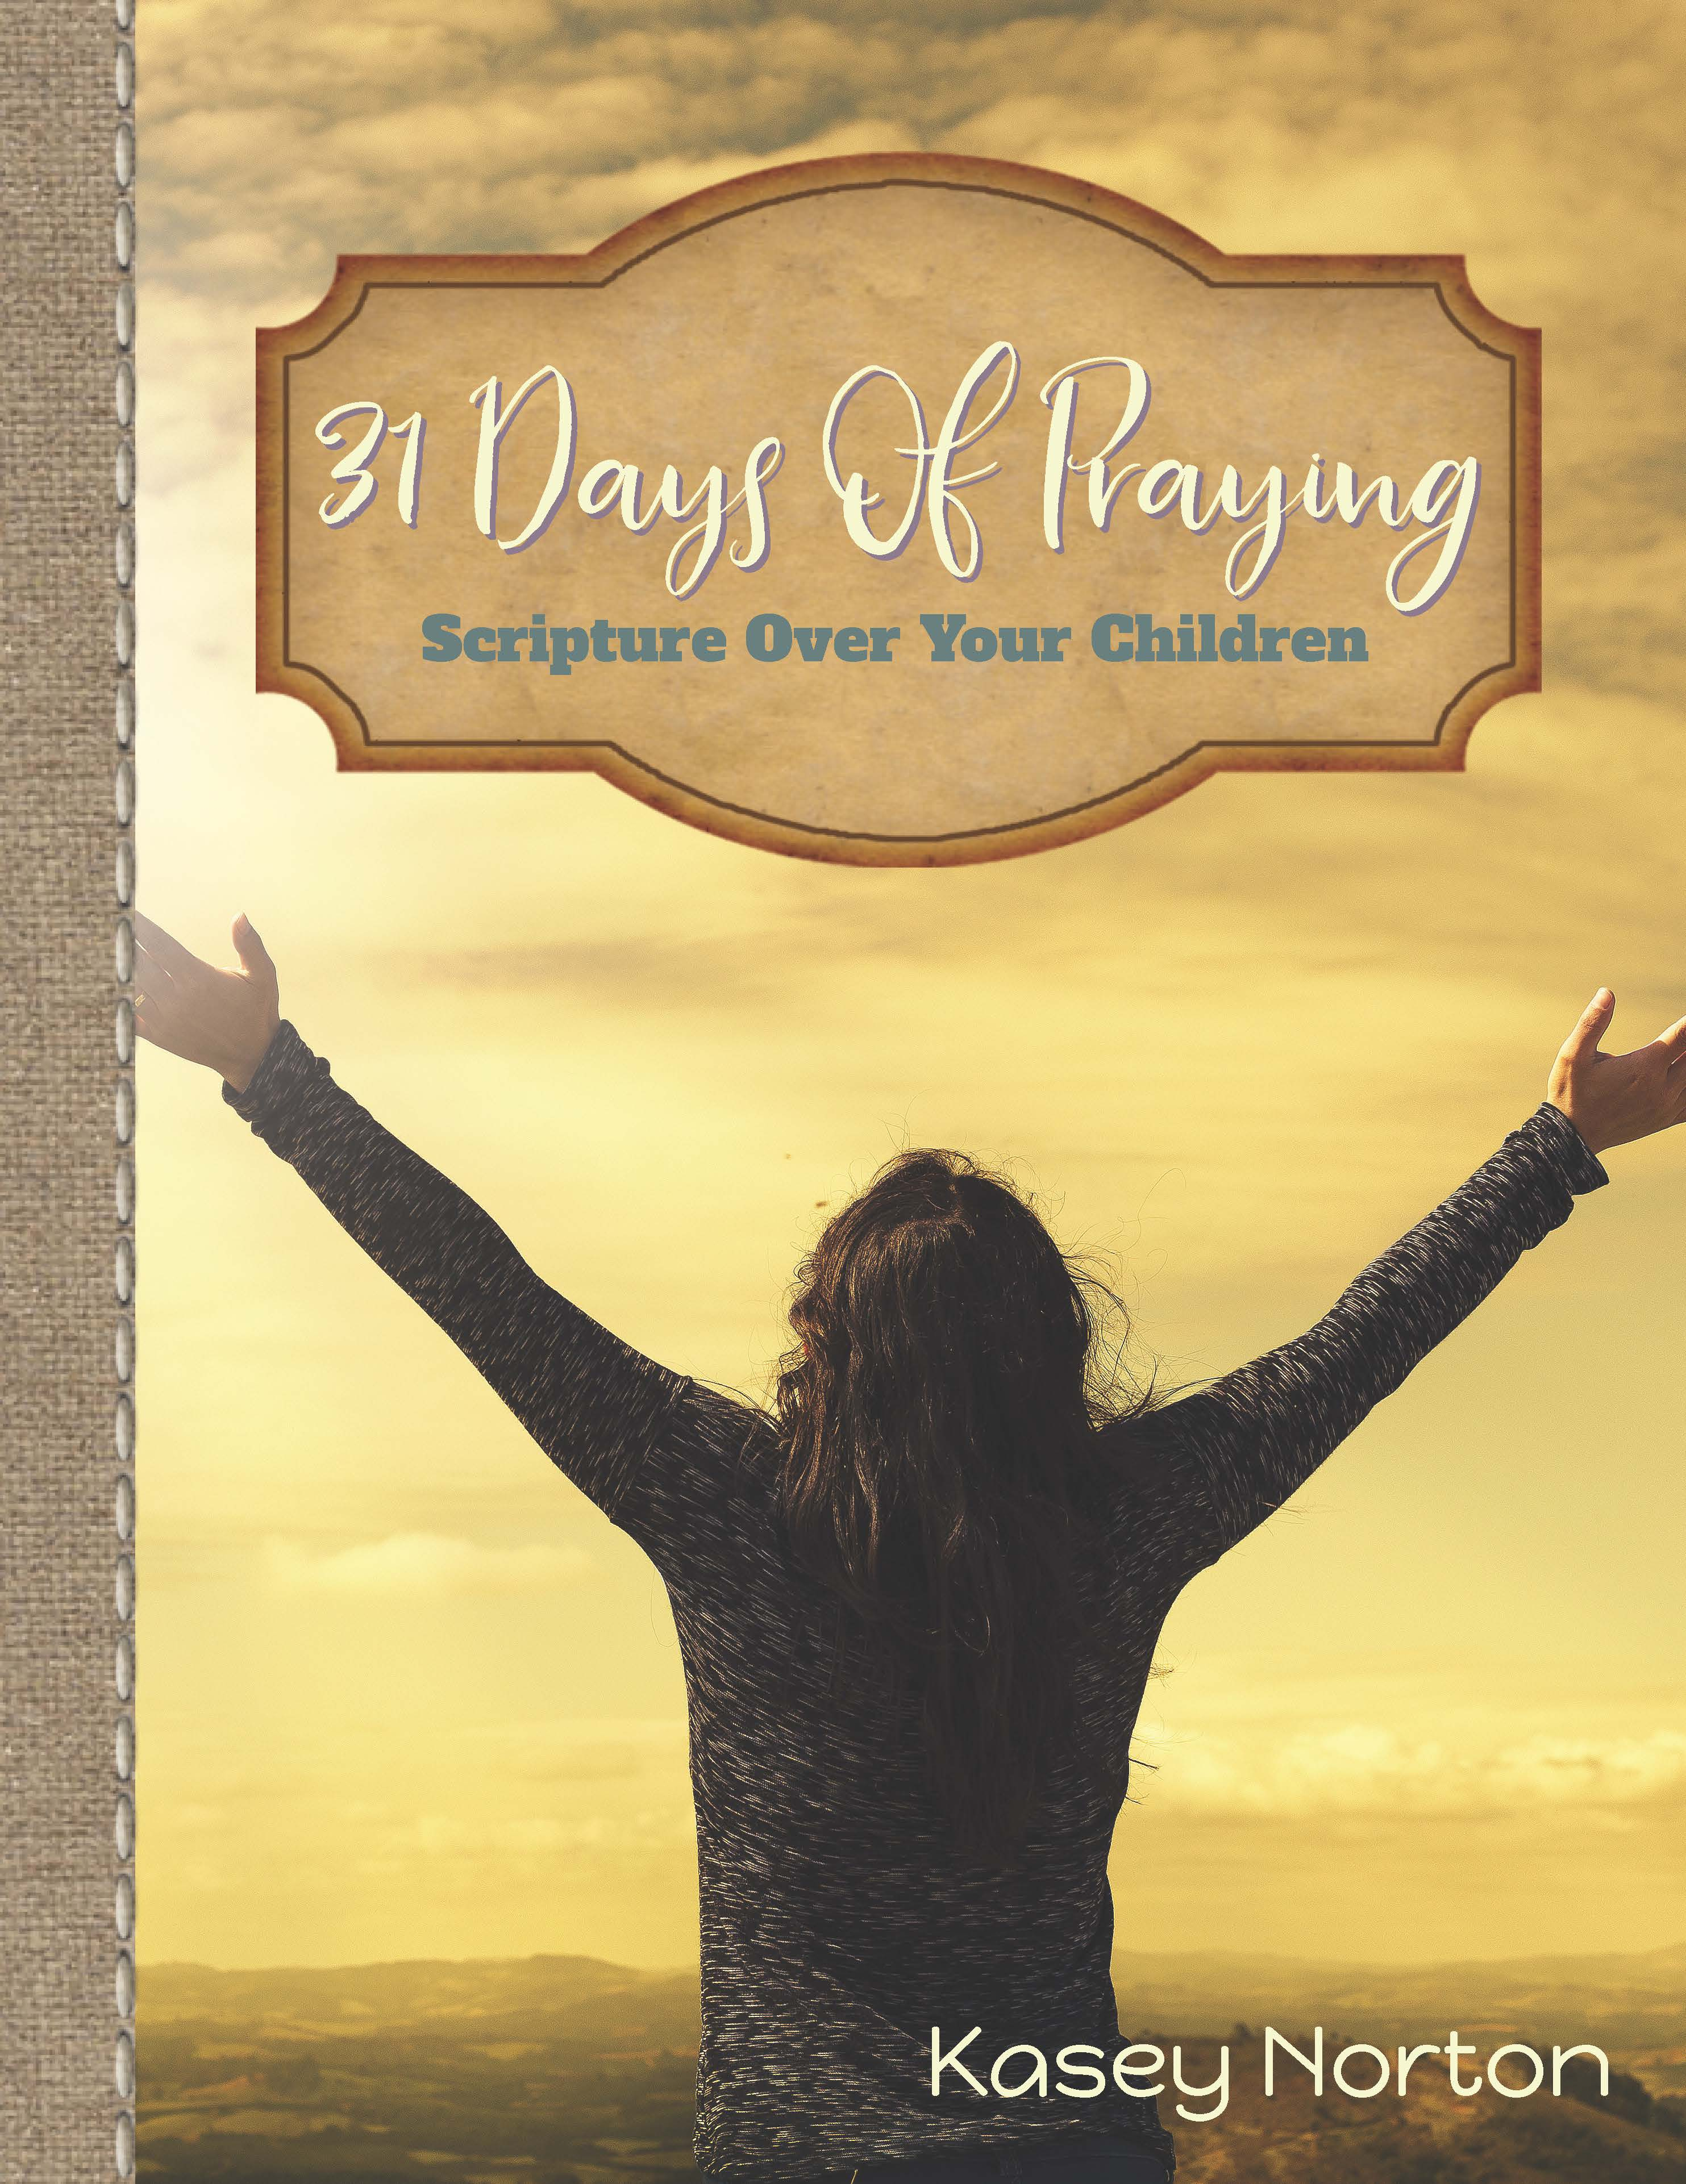 31 Days of Praying Scripture Over Your Children - Walking Redeemed